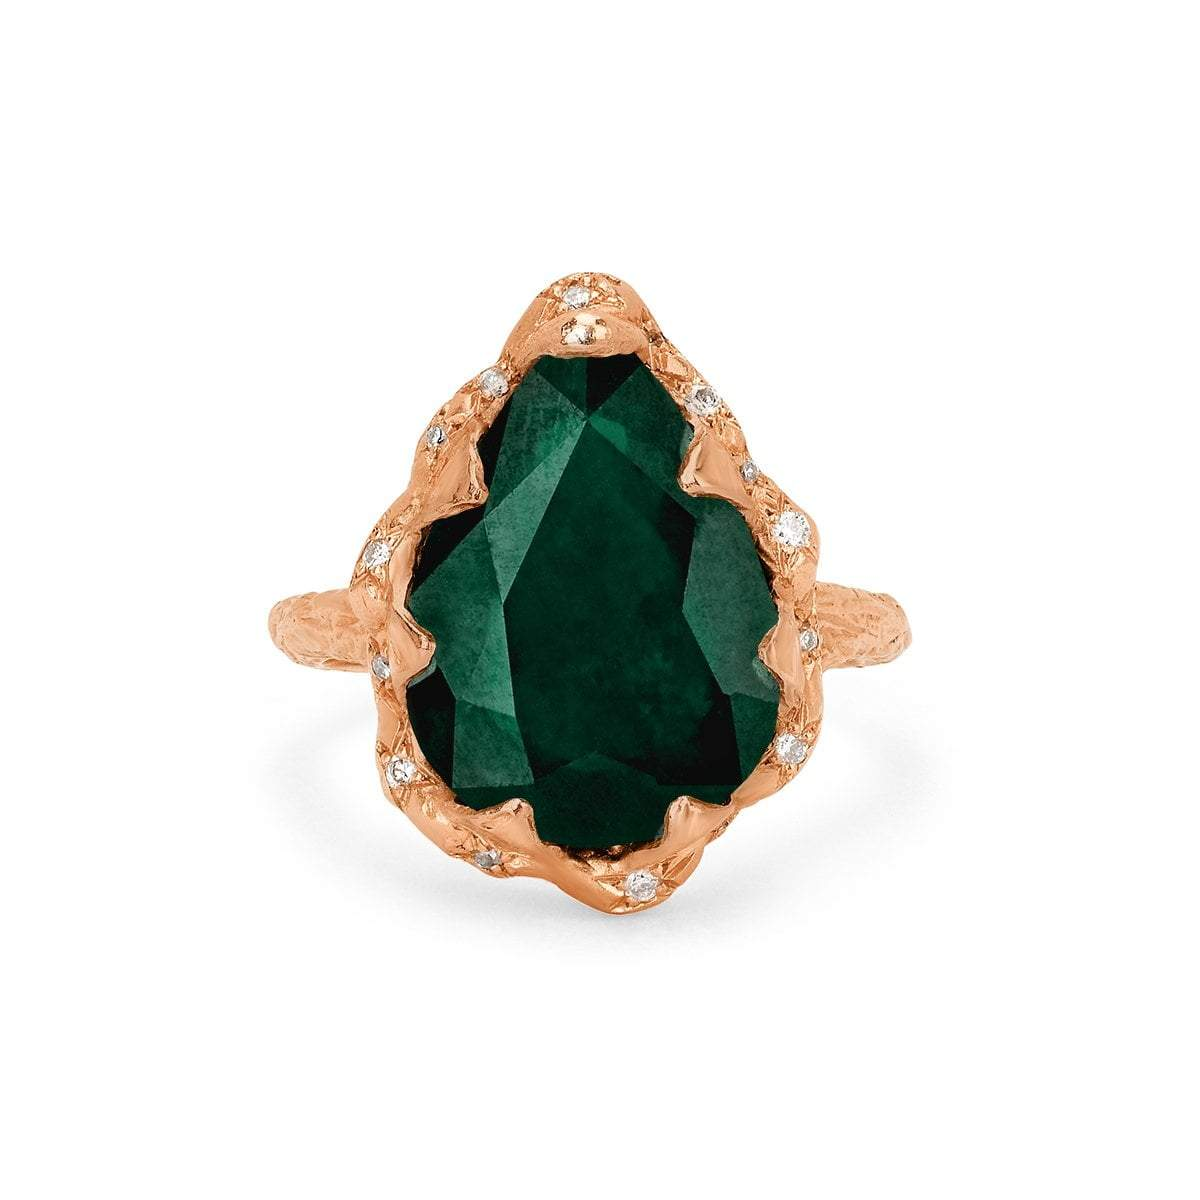 Queen Water Drop Zambian Emerald Ring with Sprinkled Diamonds